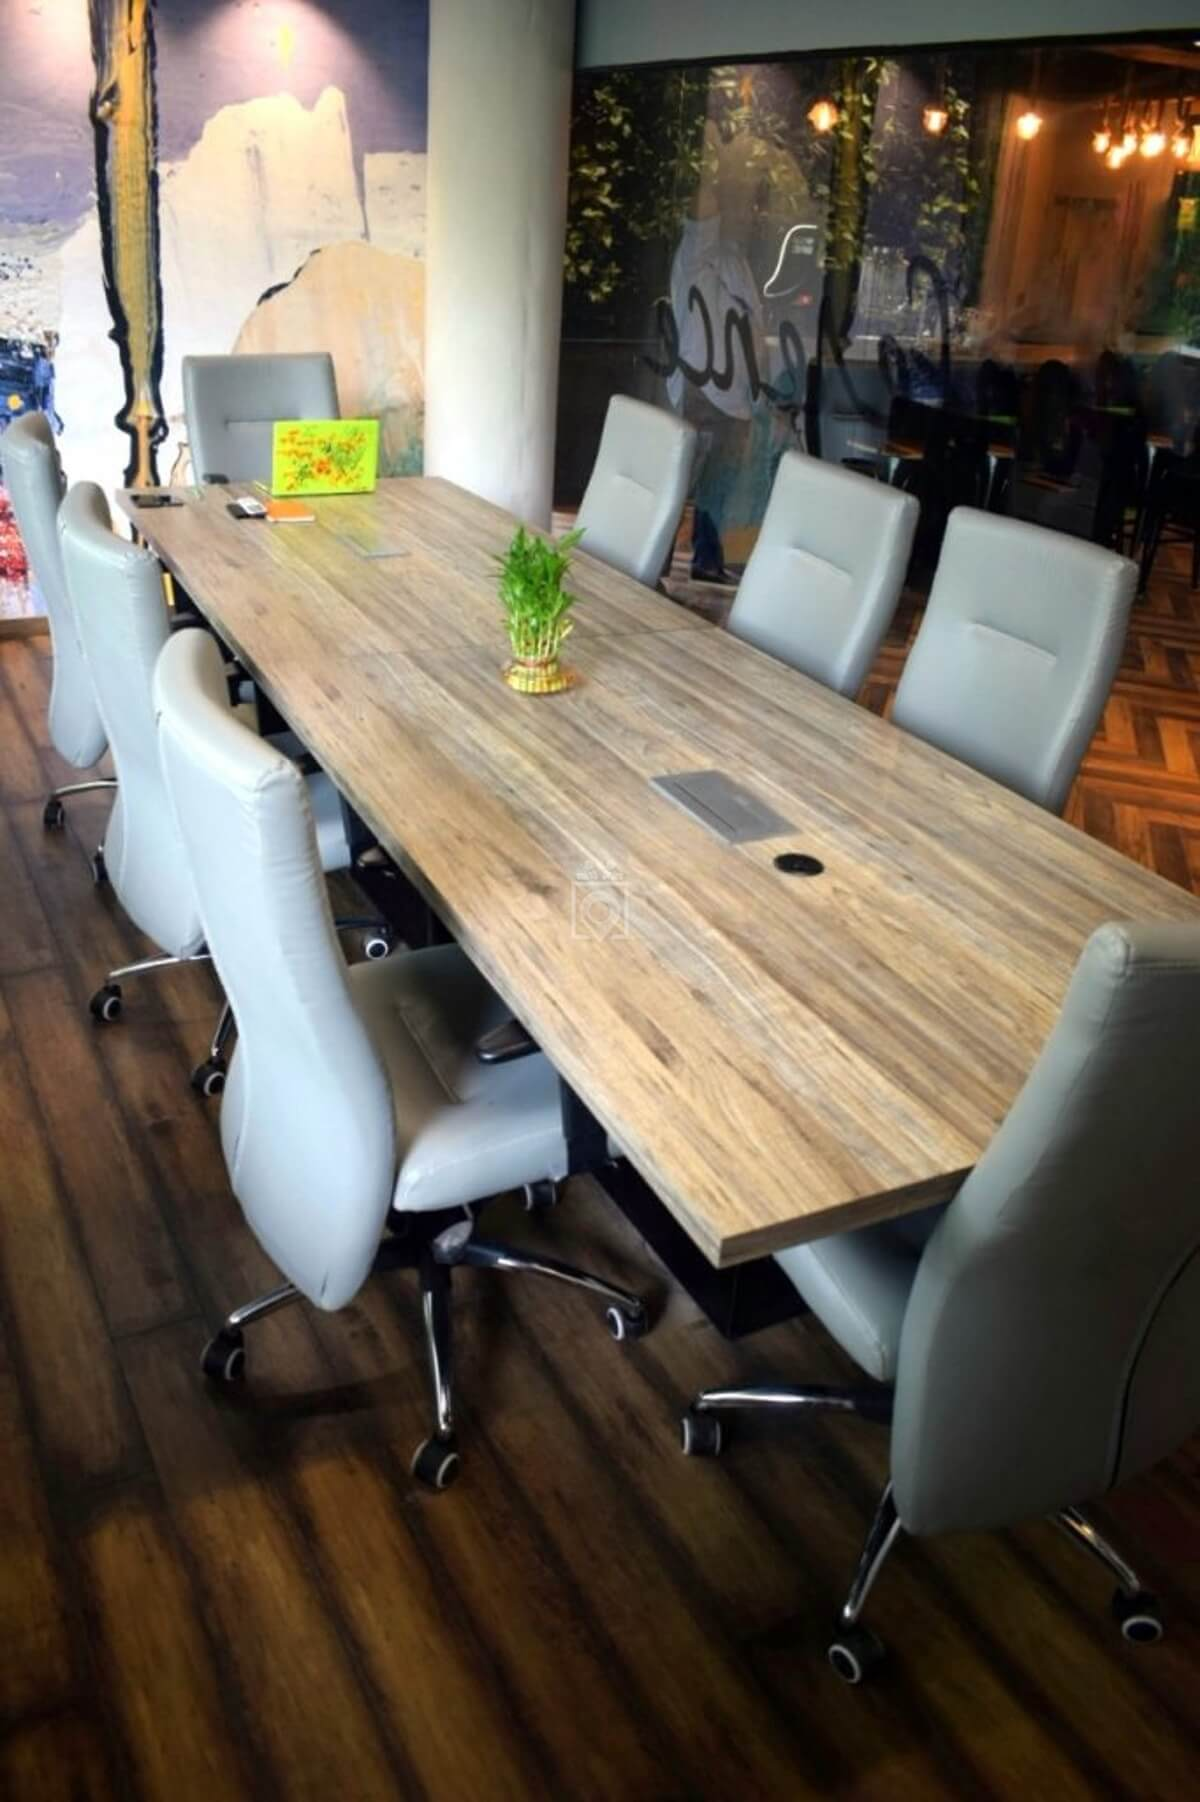 Next57 Coworking| Bookofficenow